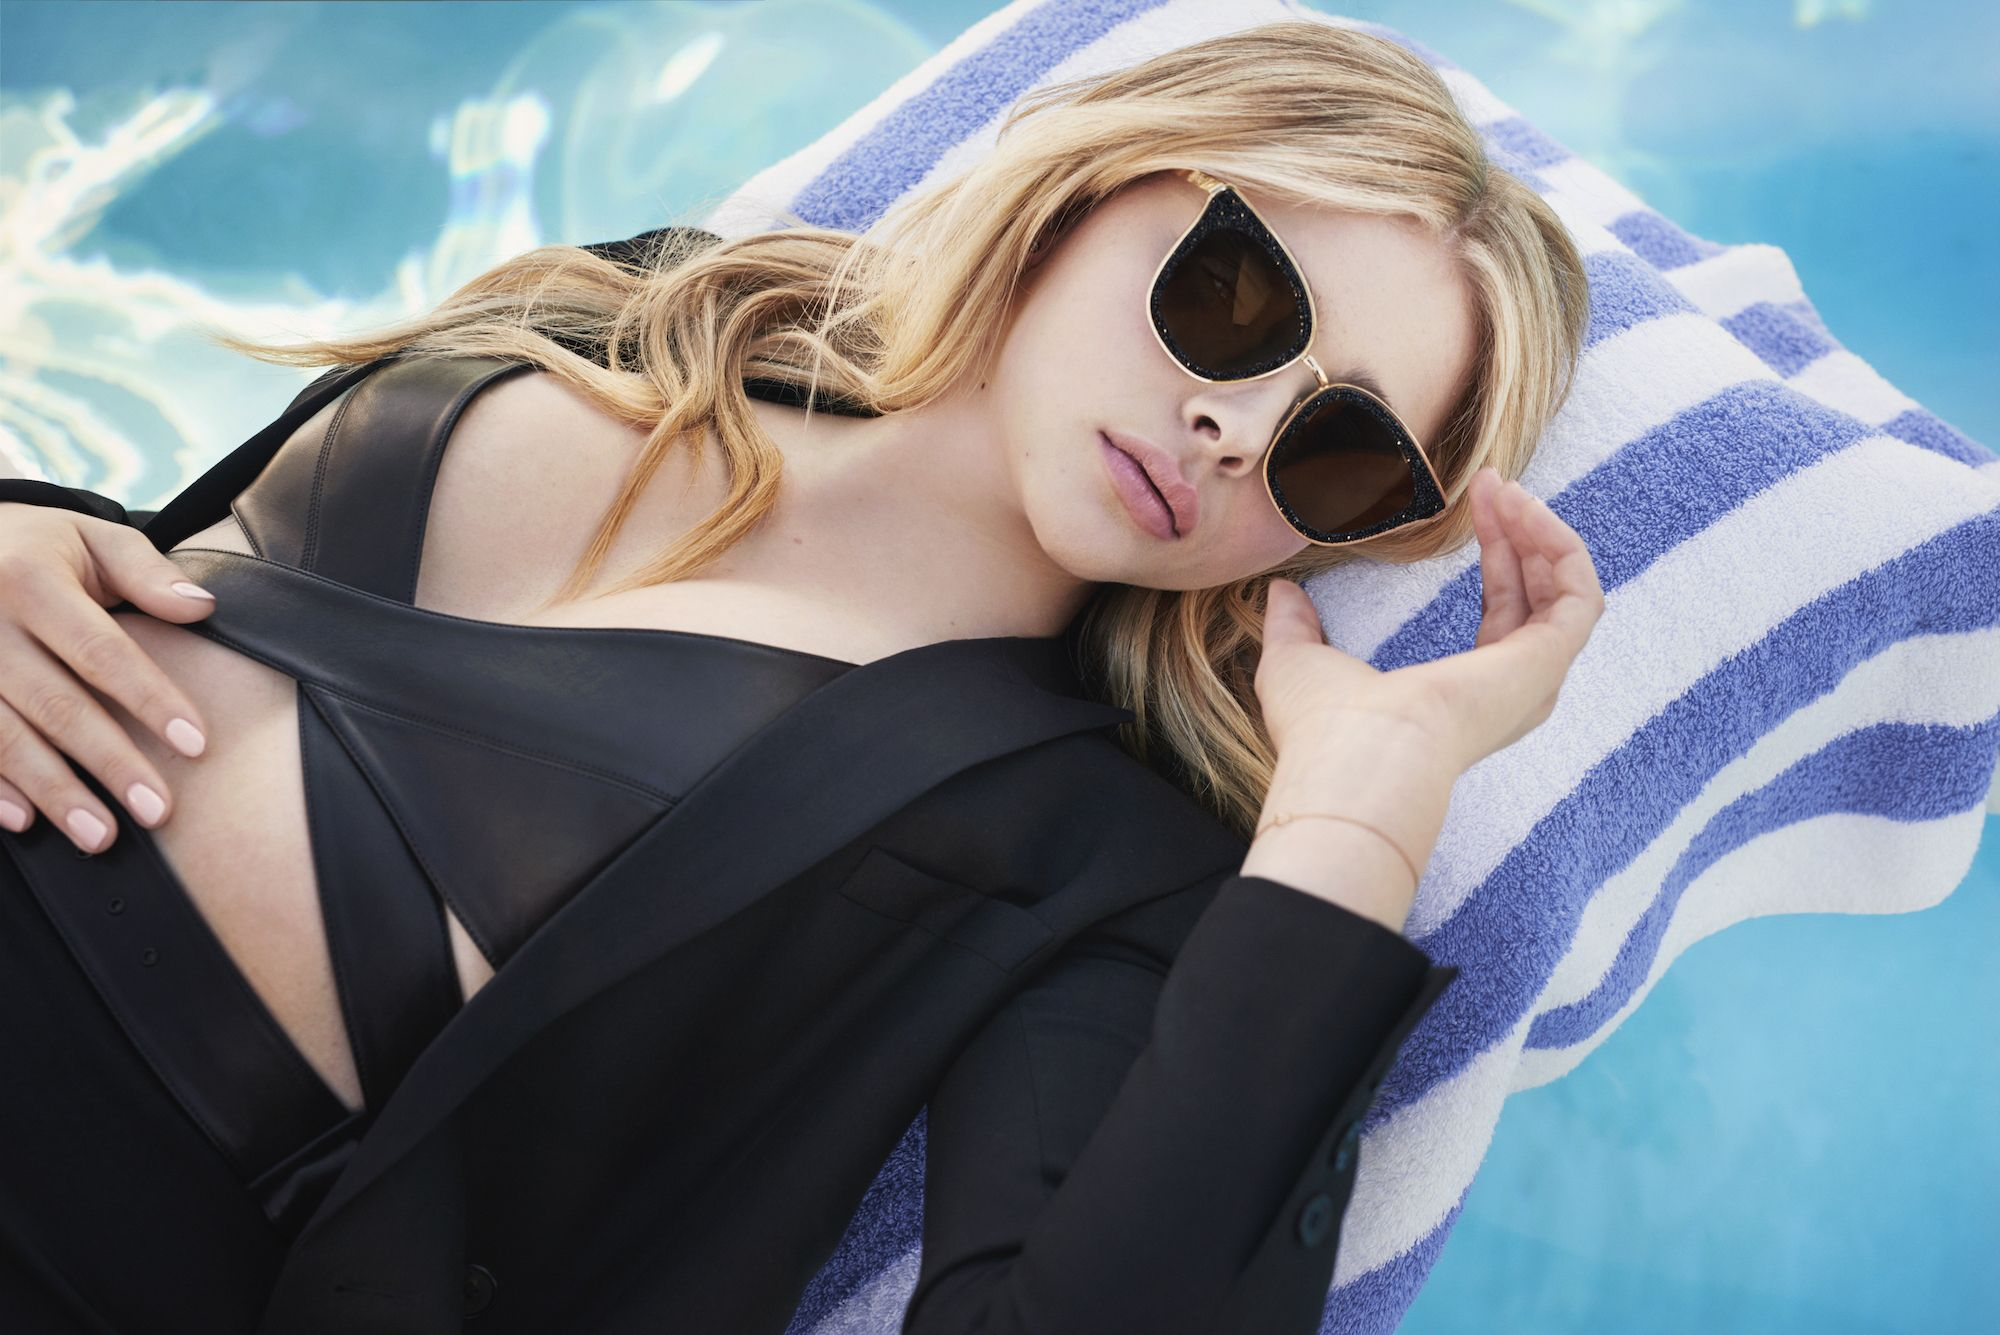 c8e1b163ef5 Chloë Grace Moretz Talks About Her Motivation In The Film Industry ...